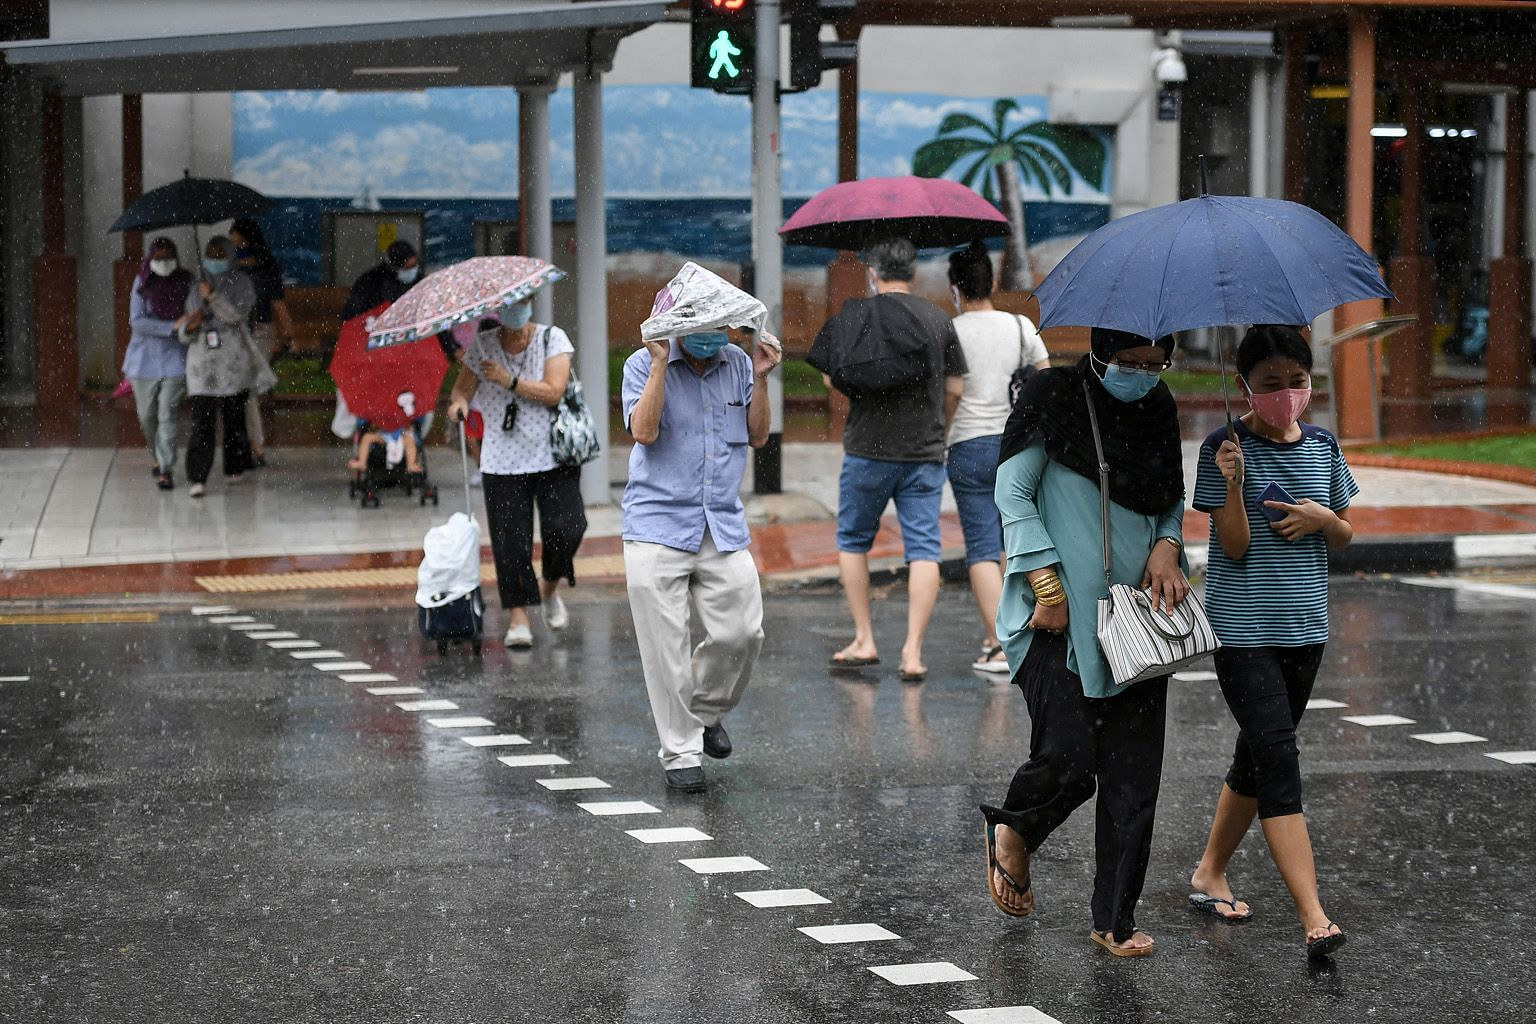 The wet weather in North Bridge Road last Monday. Looking at rainfall and mean temperature data for June and July over the past 20 years, there is a clear oscillating rhythm where temperature and rainfall peak in some years and fall in other years, s